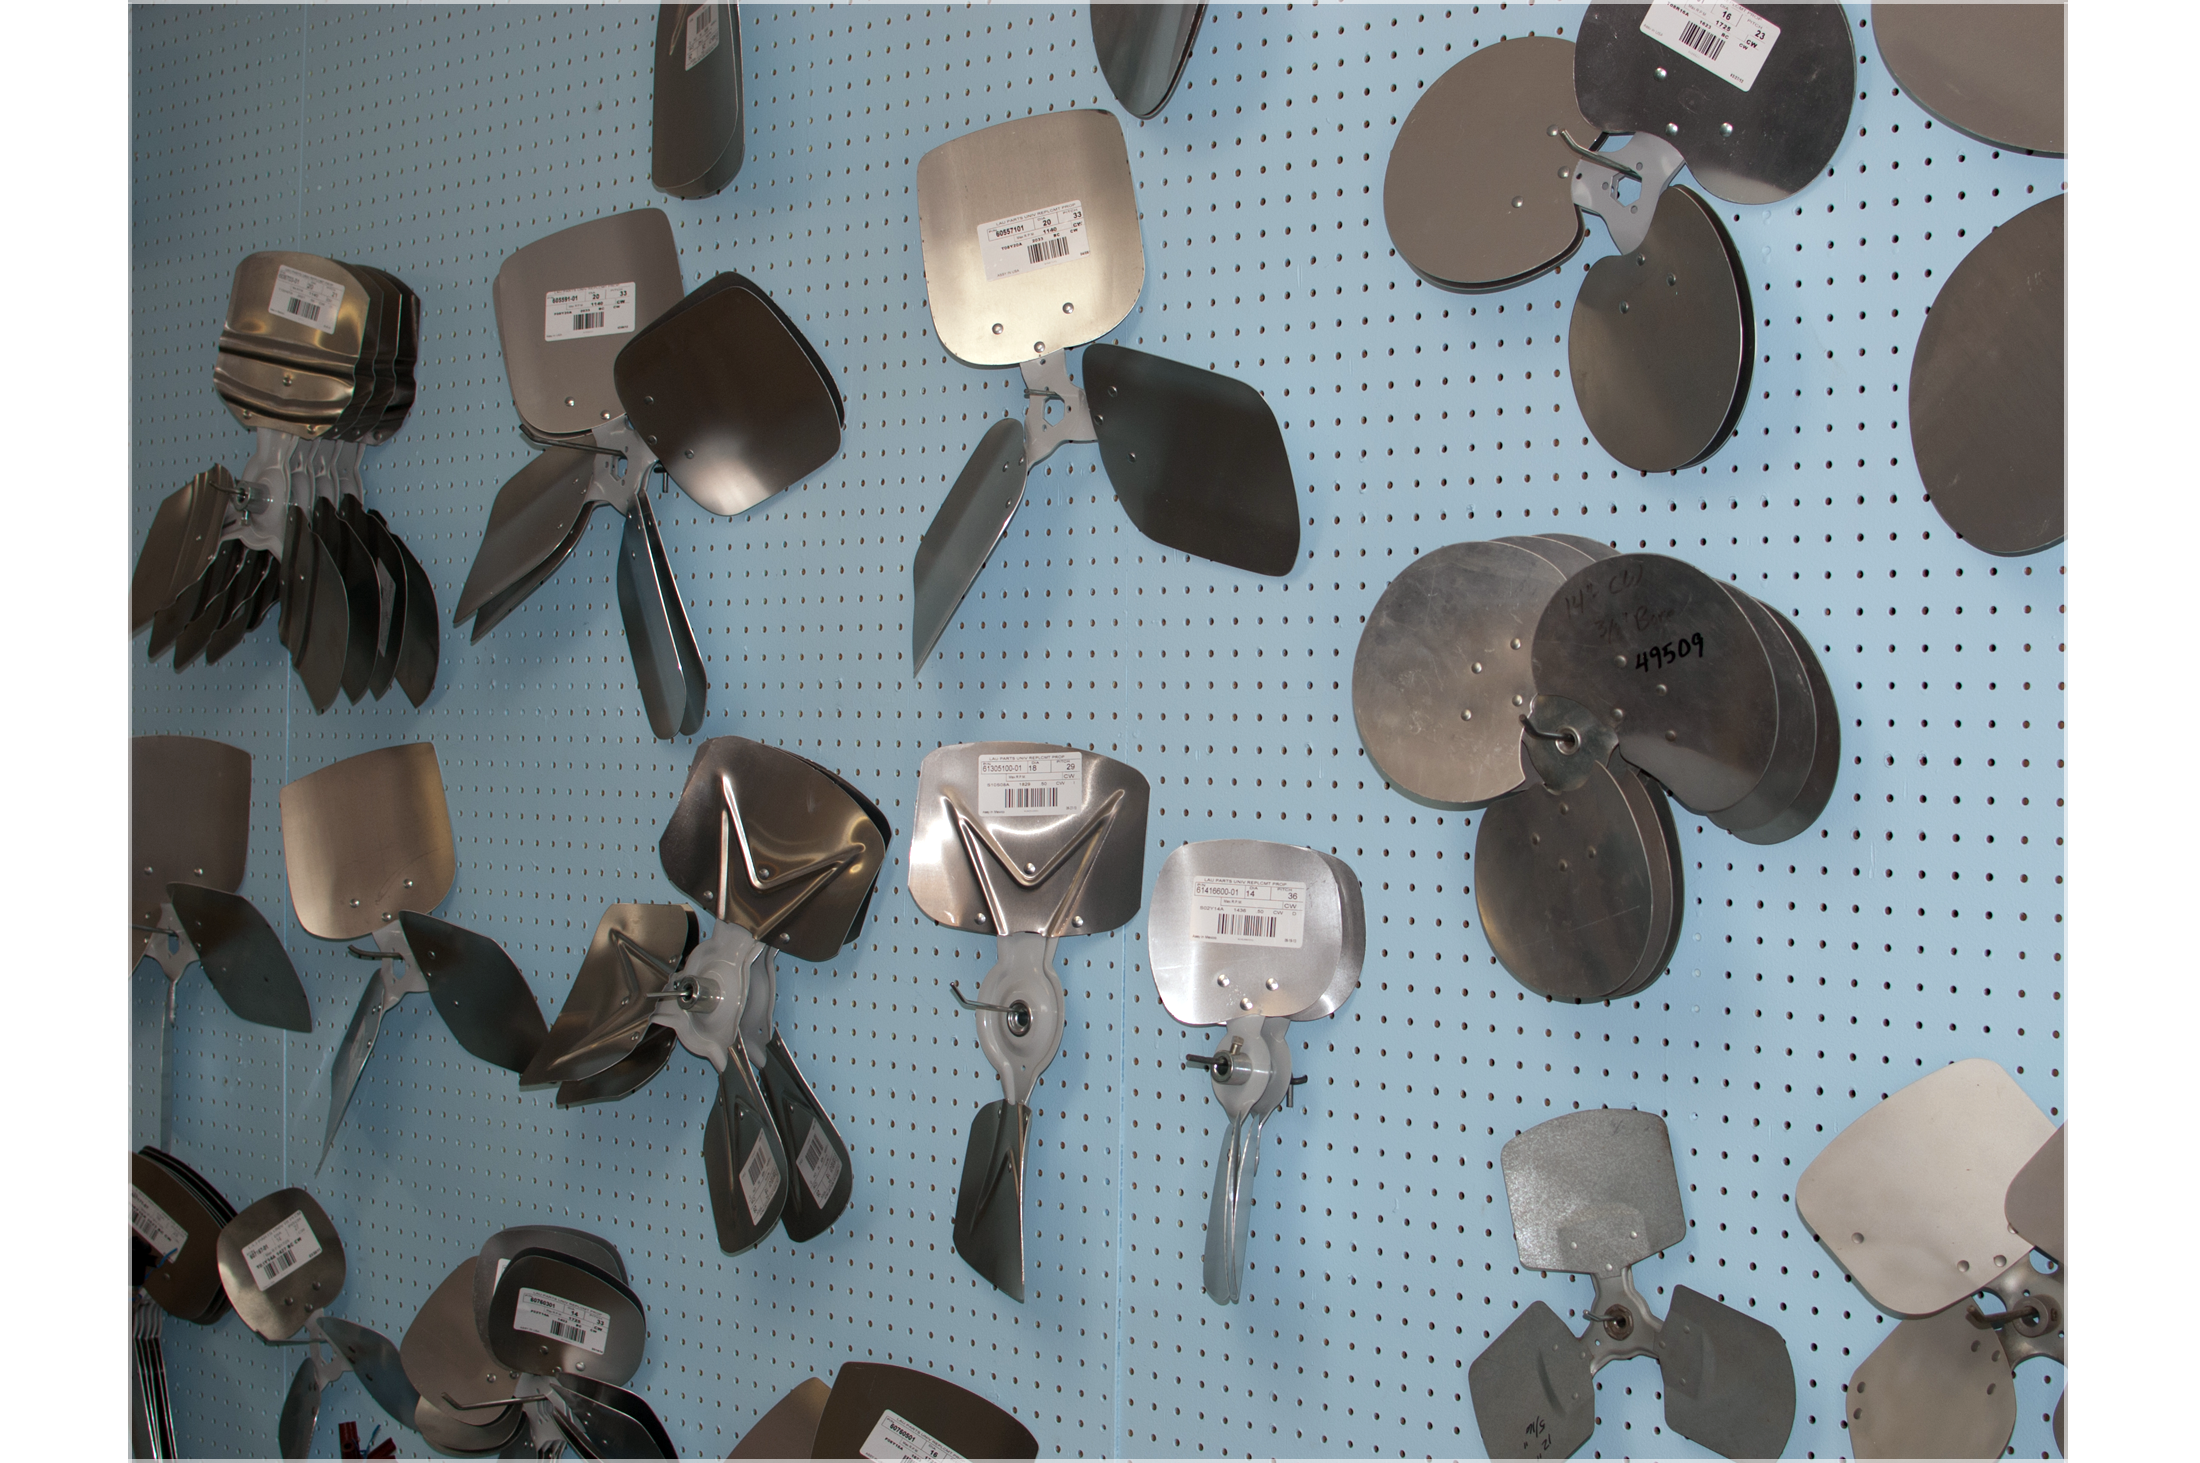 A variety of fan blade sizes and shapes